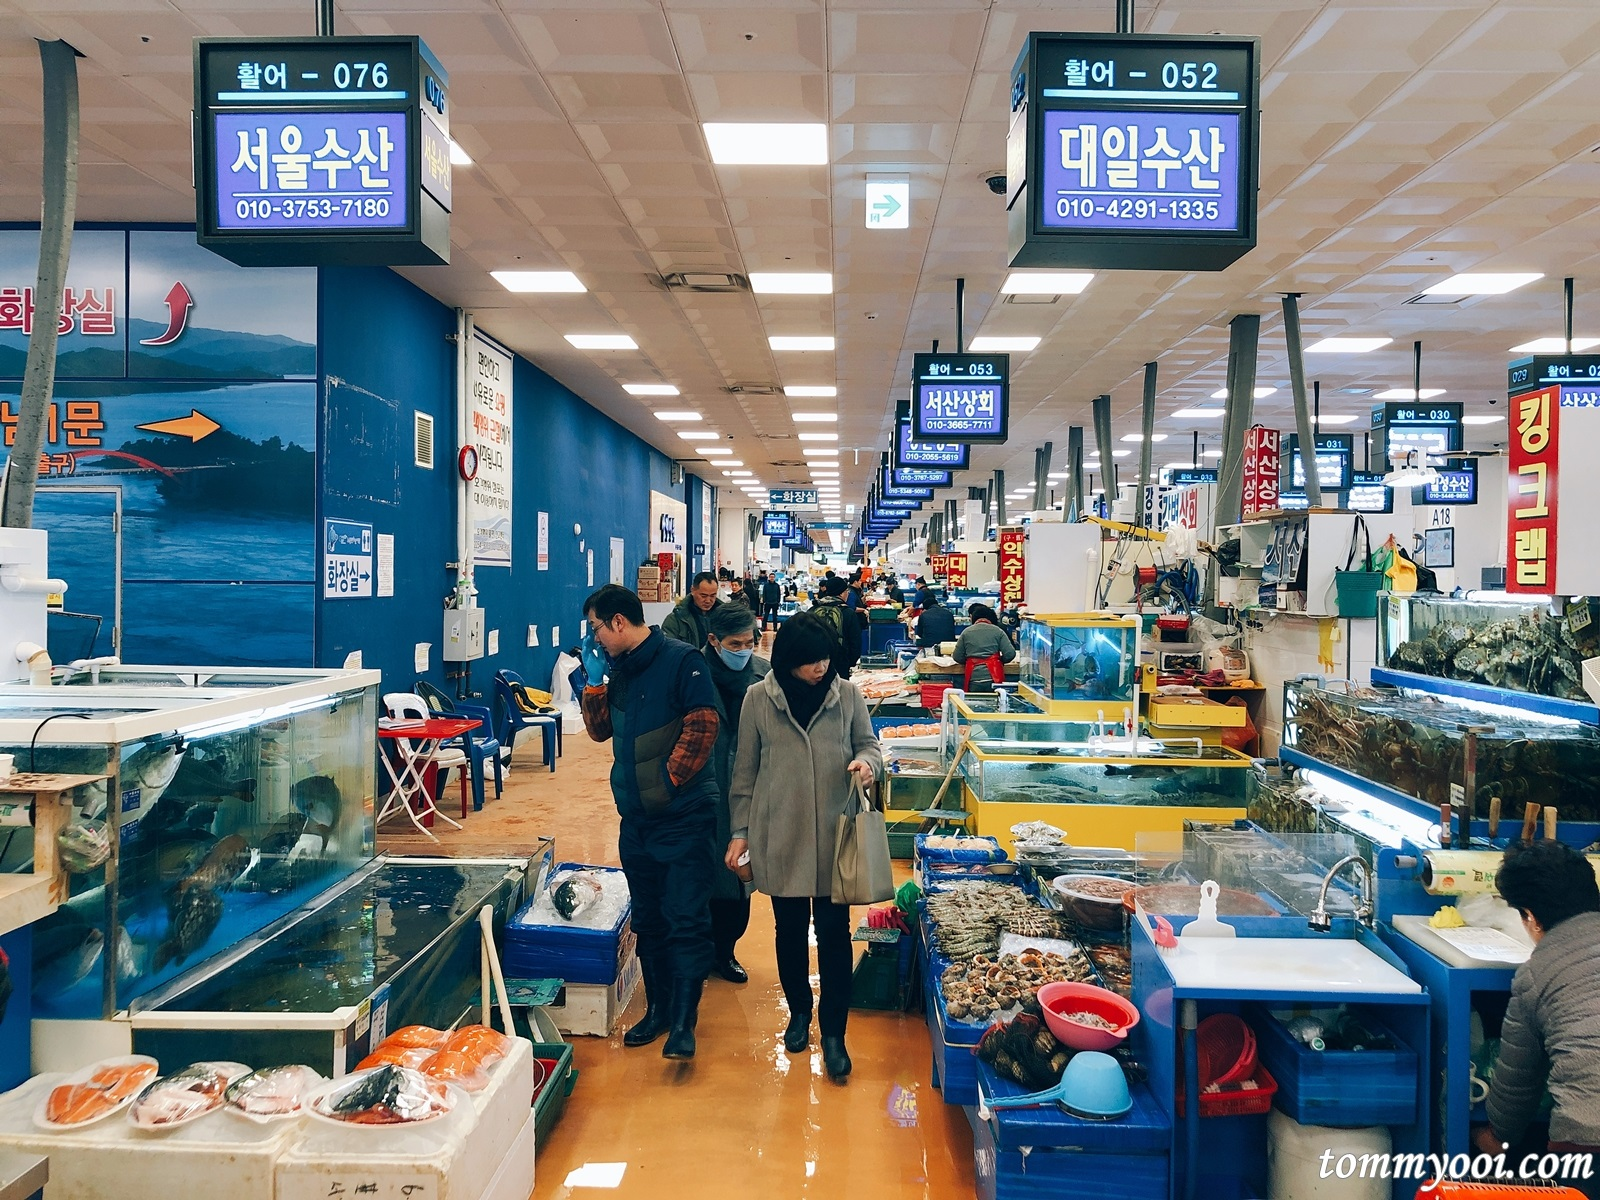 Noryangjin Fish Market is one of South Korea s biggest fish market trading approx 300 tonnes of marine products daily The fish market sells a wide variety